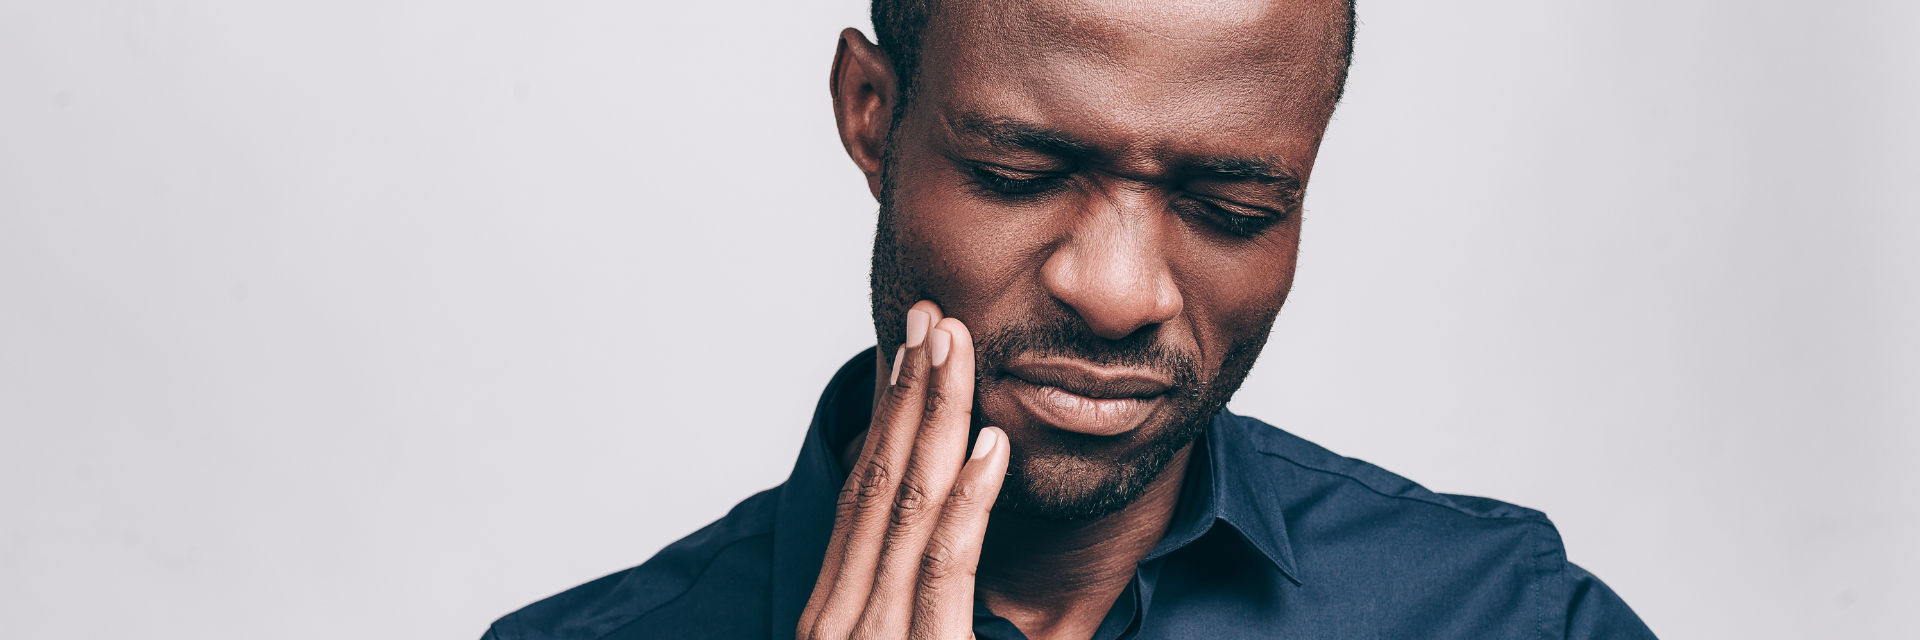 An Afro-American man with dental pain.